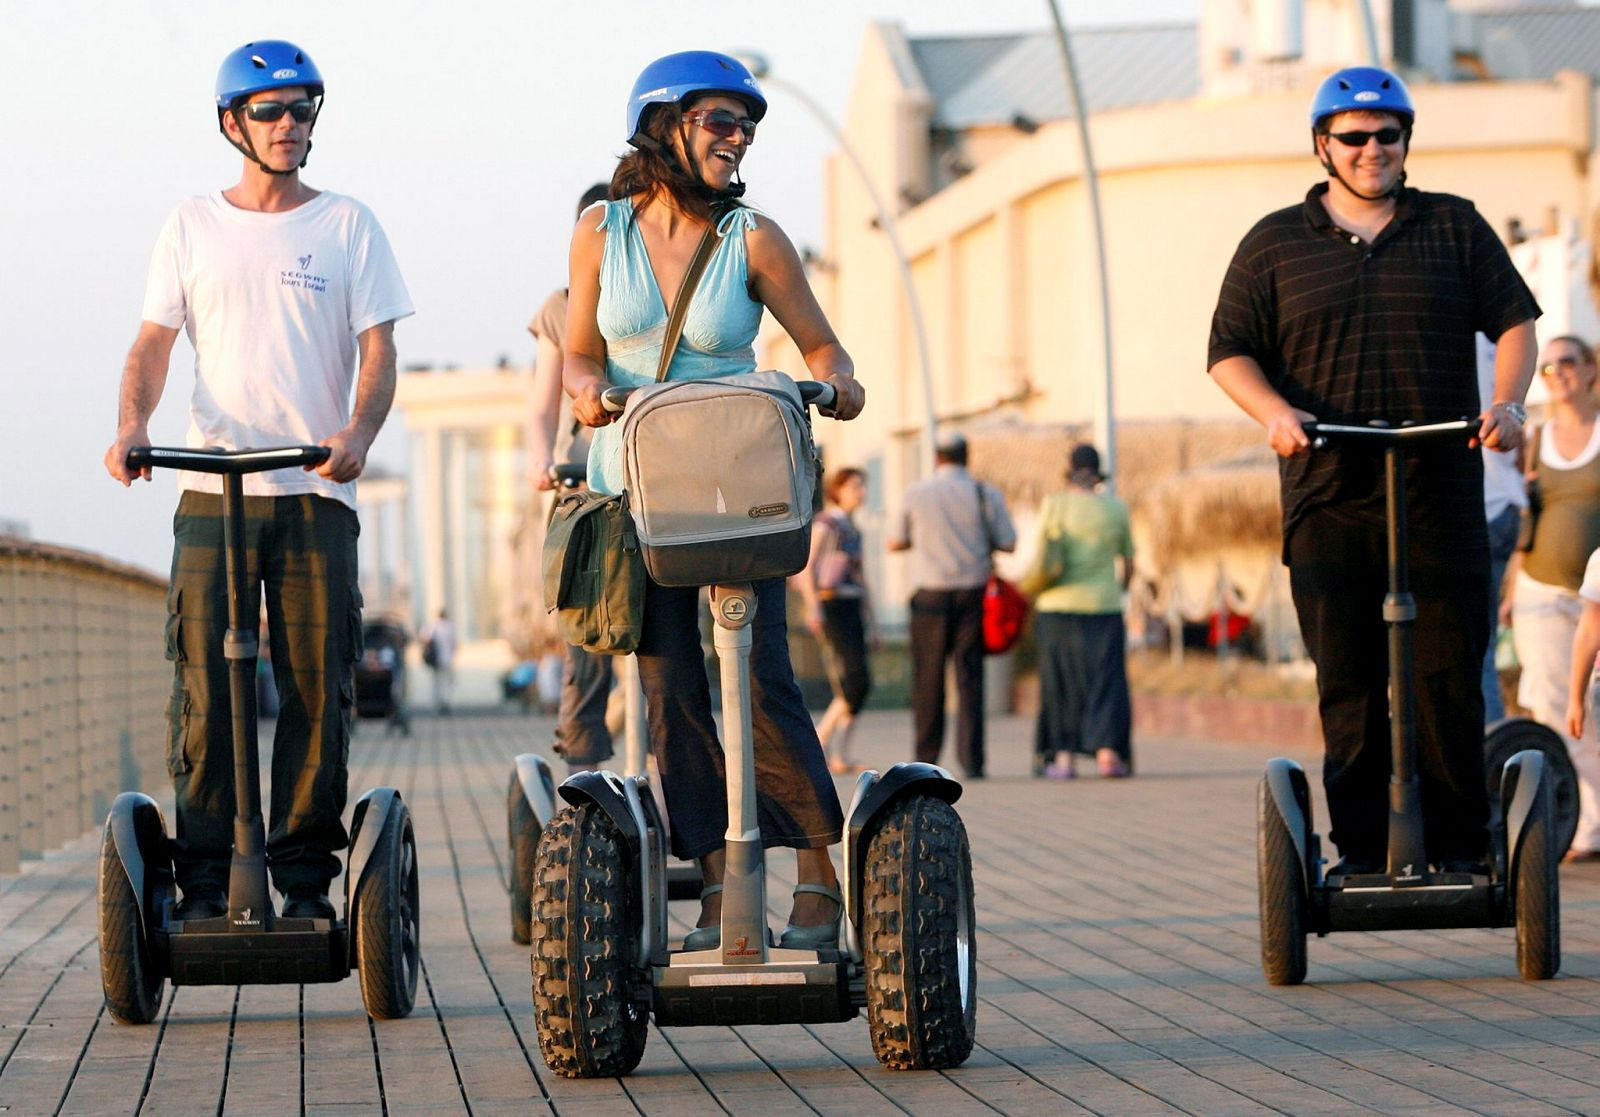 Tourists take a Segway ride along the boardwalk in Tel Aviv. Photo by Moshe Shai/FLASH90